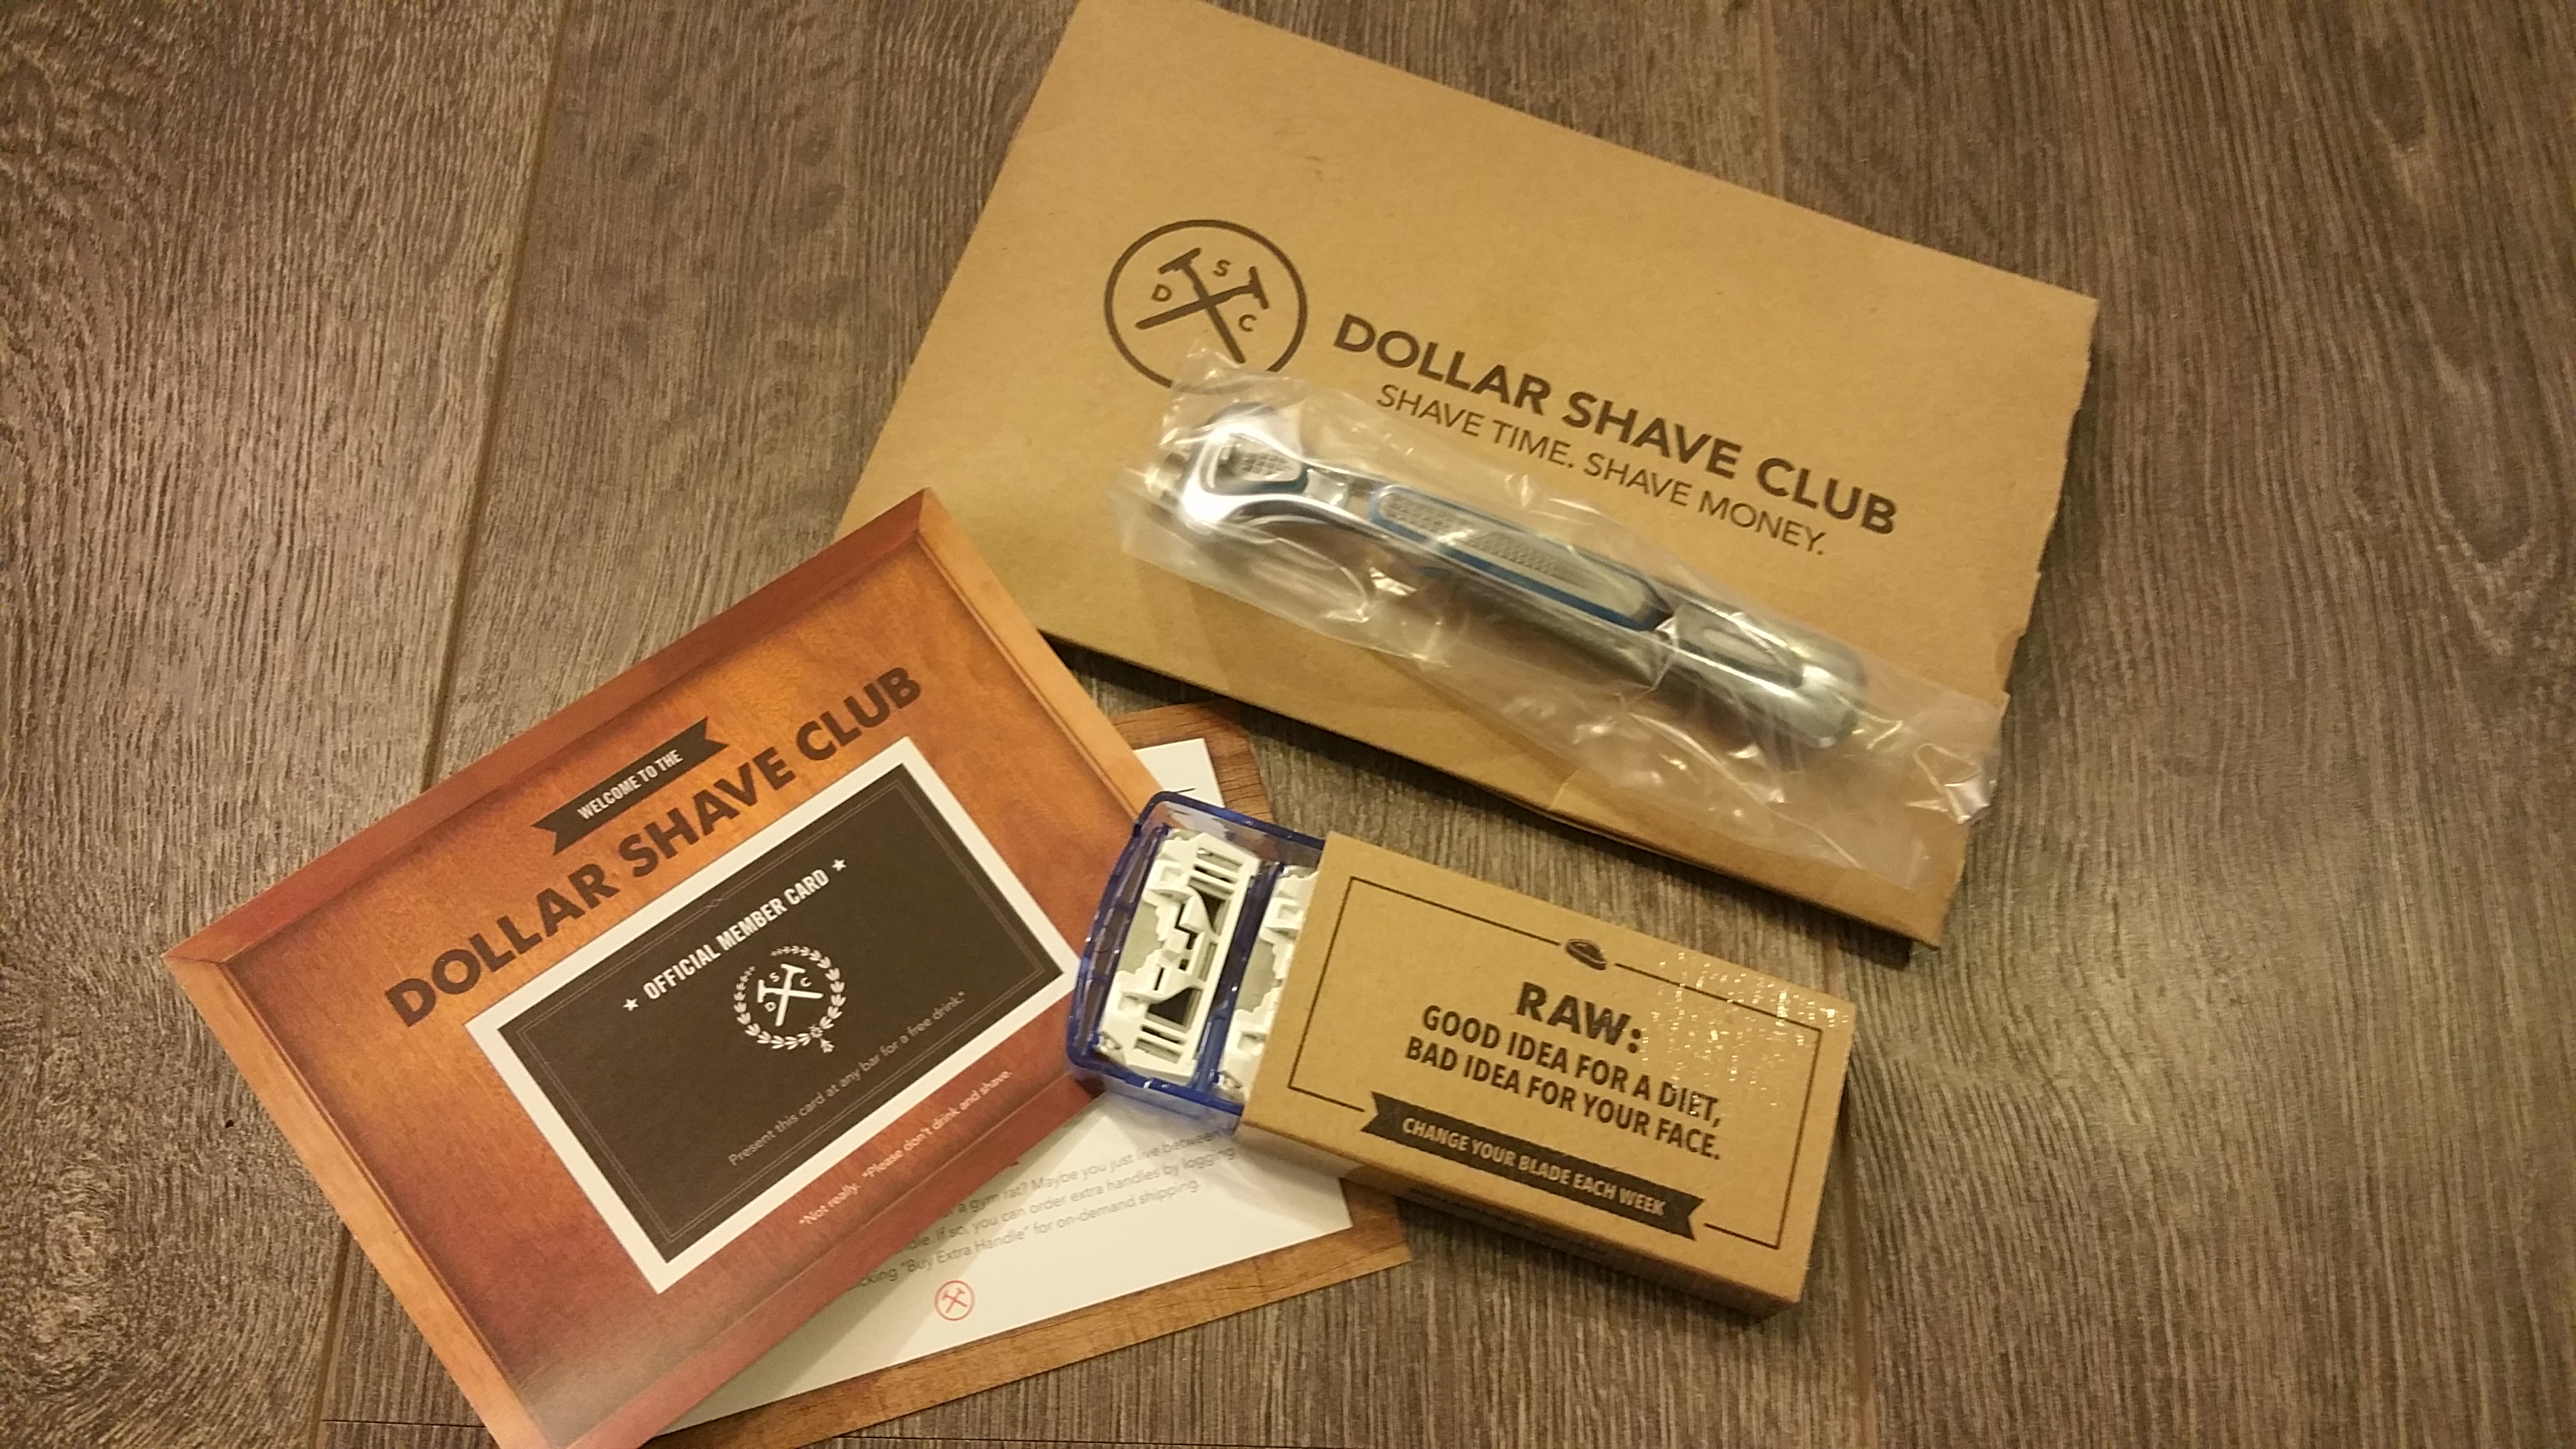 harrys and dollar shave club upended the shaving industry - HD3264×1836